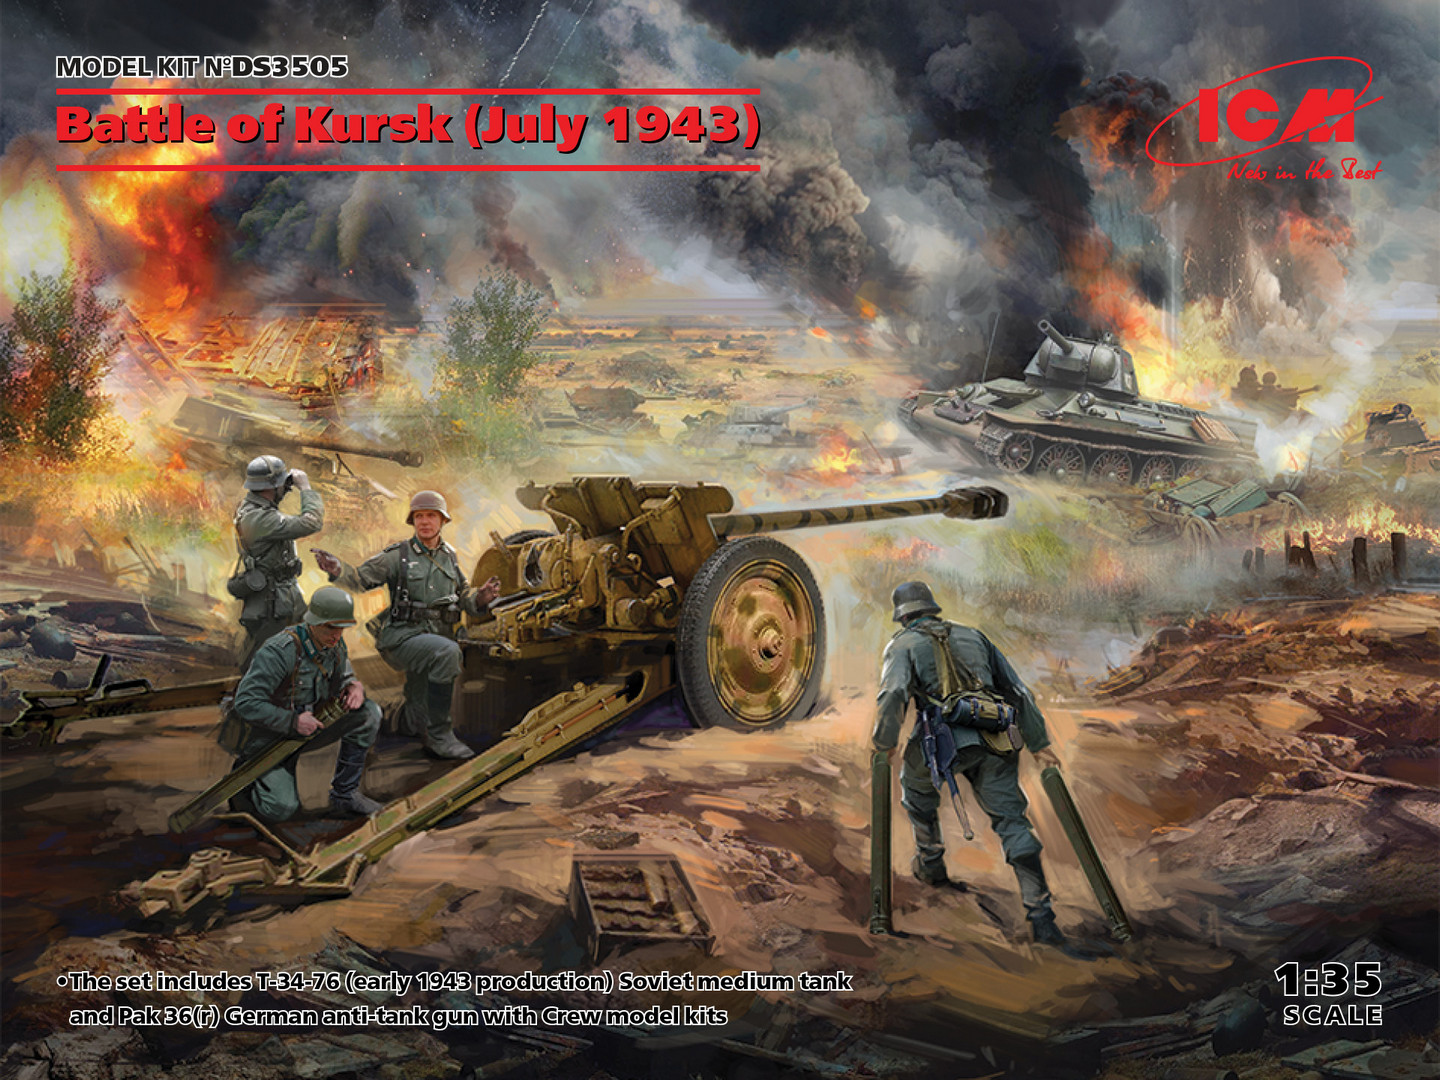 ICM Battle of Kursk (July 1943) 1/35 Scale